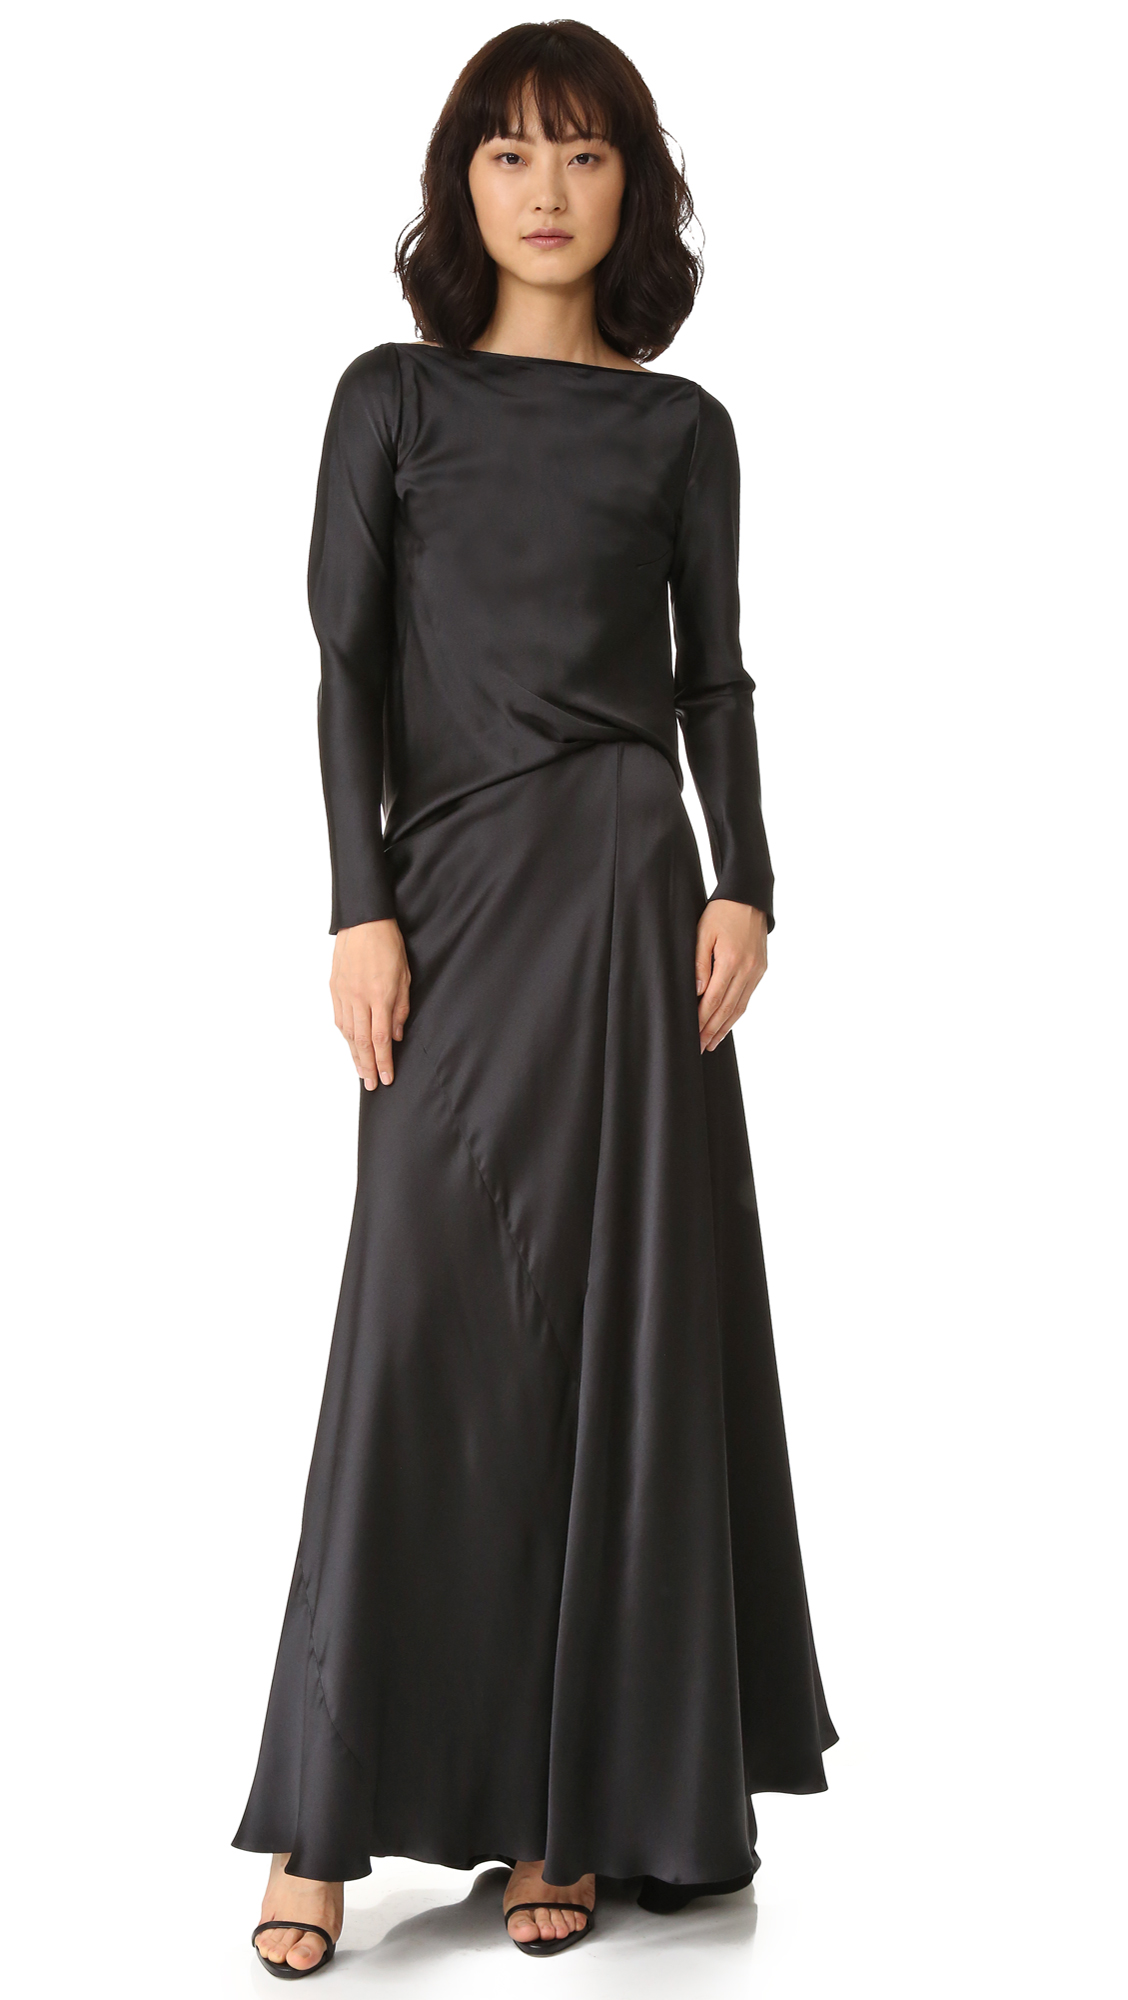 Edun Charmeuse Long Sleeve Draped Back Dress - Black at Shopbop